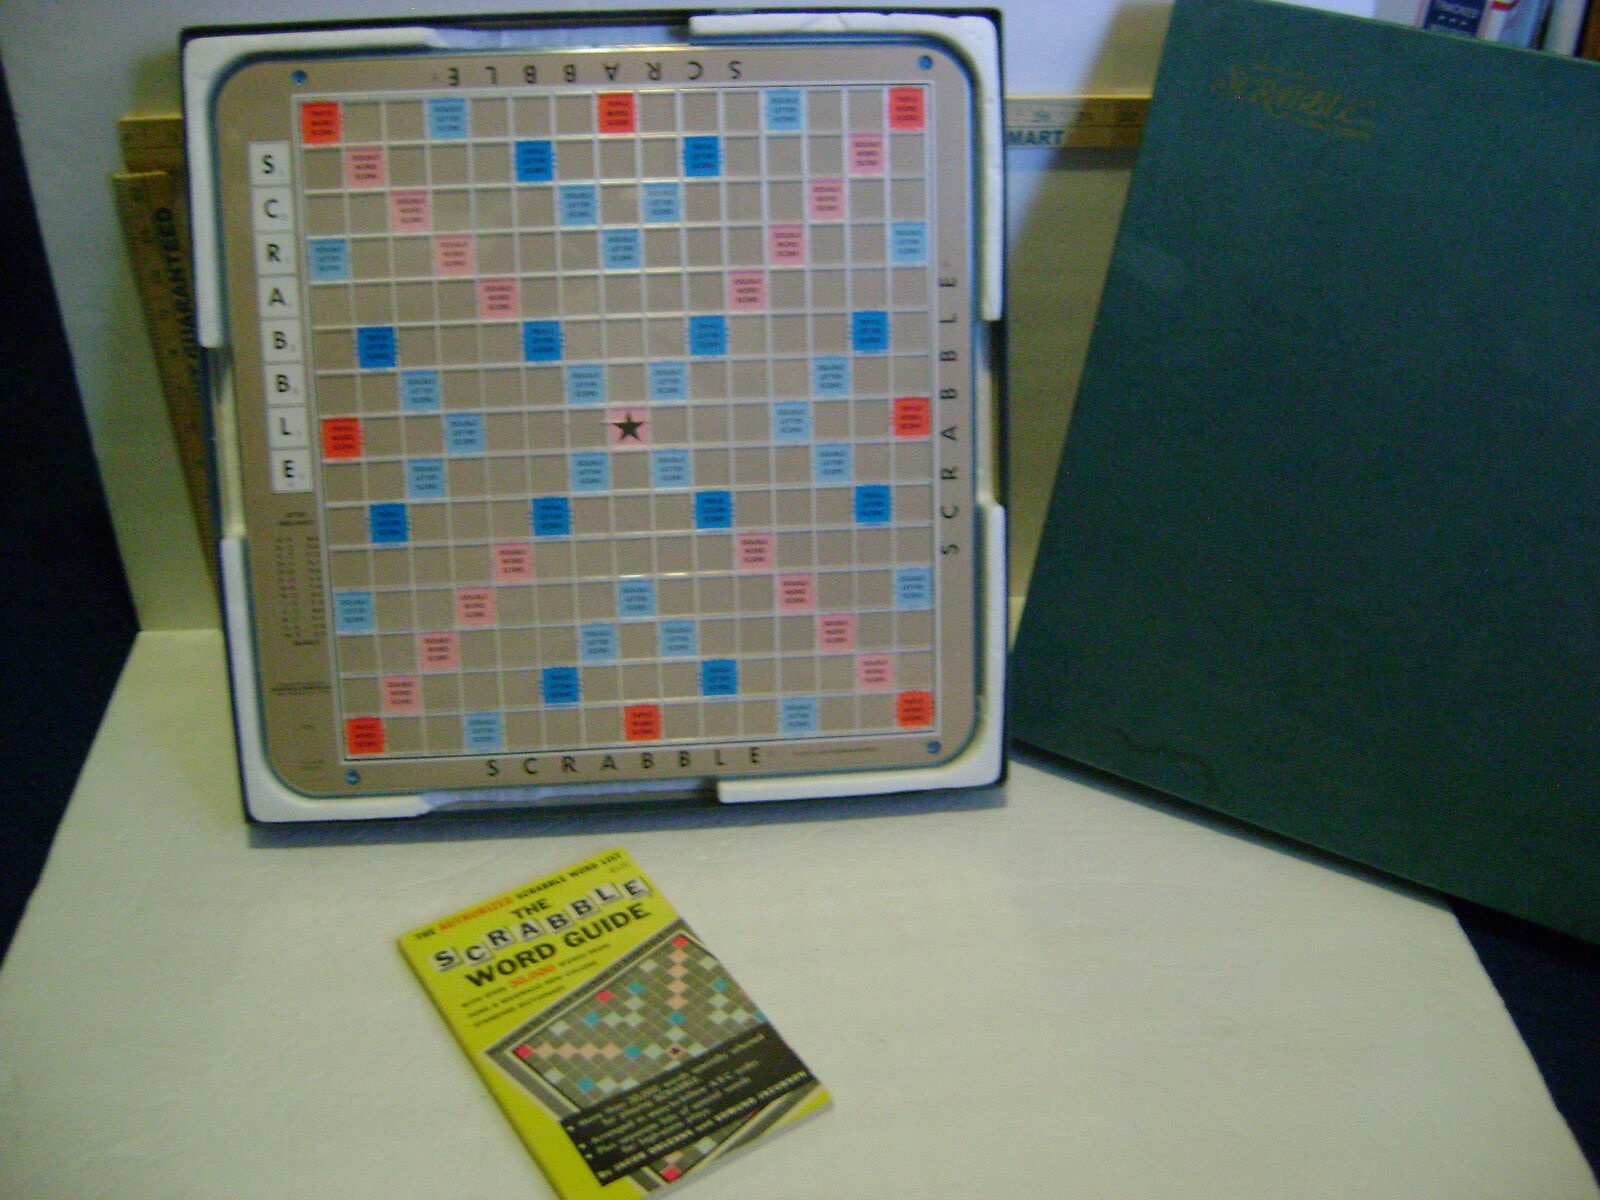 1976 SCRABBLE redATING TURNTABLE BOARD GAME by Selchow & Righter - COMPLETE